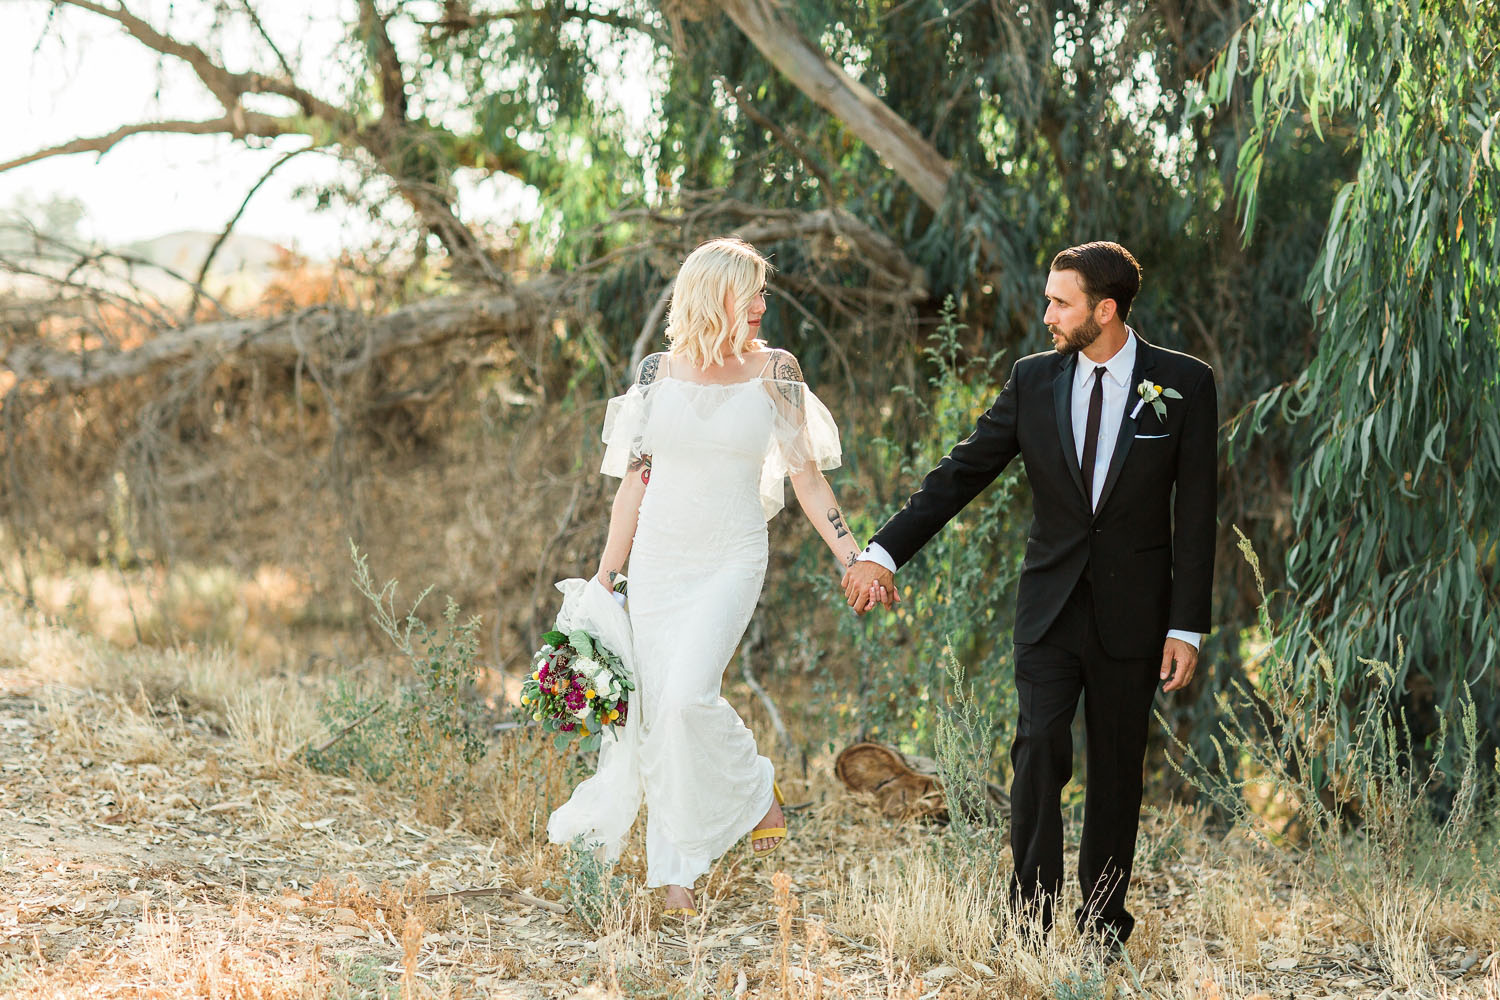 The Photege - Elegant Boho Wedding on Suburu Farm in Bakersfield California- Cassie and Darin Buoni-3014